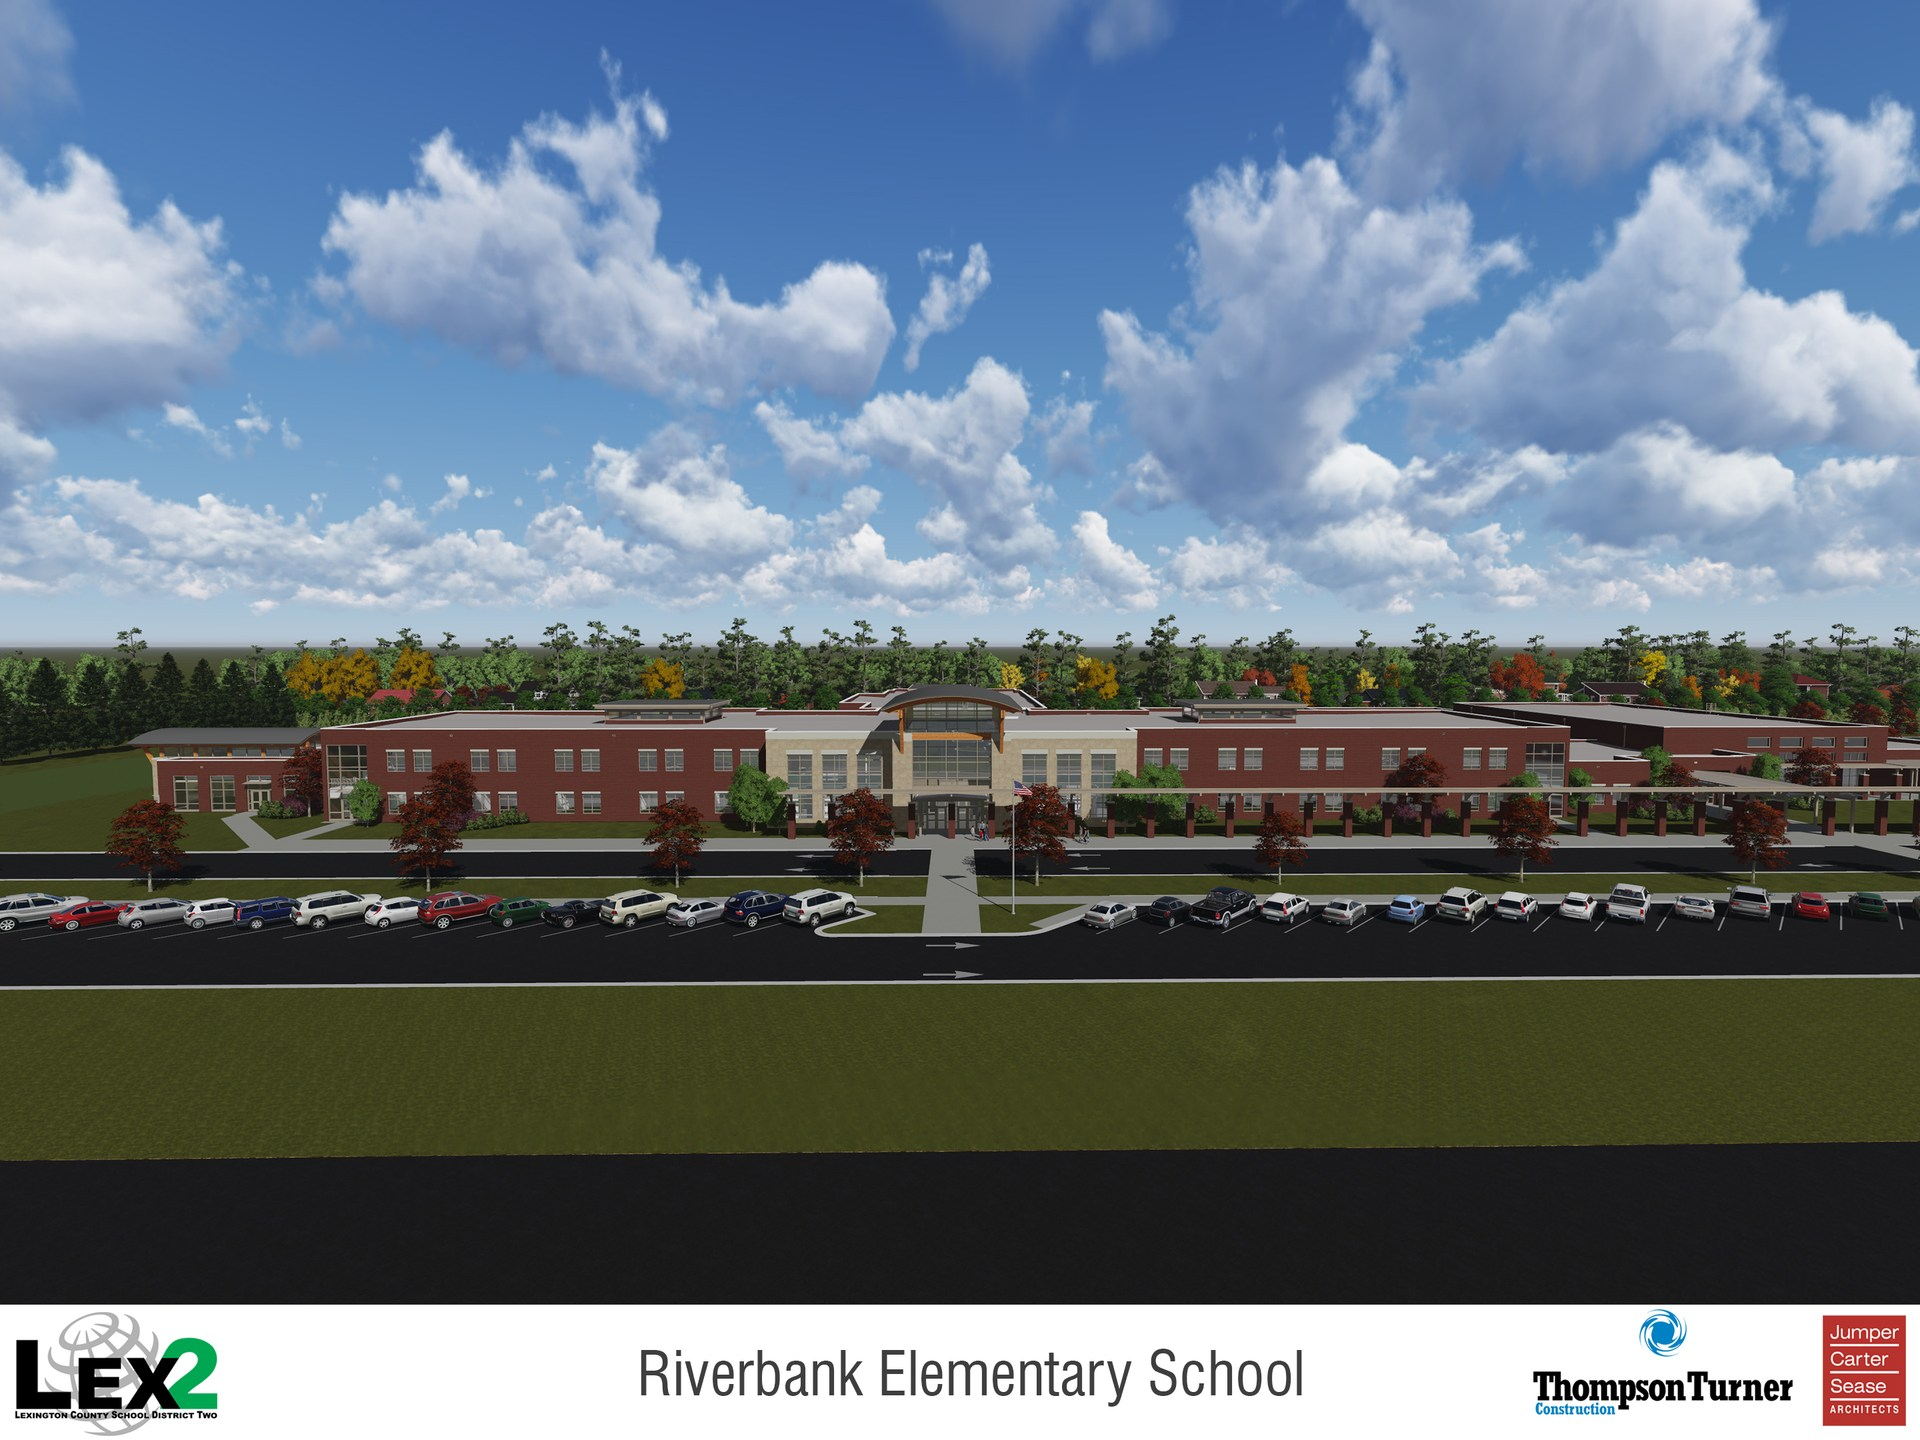 Riverbank Elementary opened August 2018 welcoming students from former B-C Grammar School #1 and Pineview Elementary.